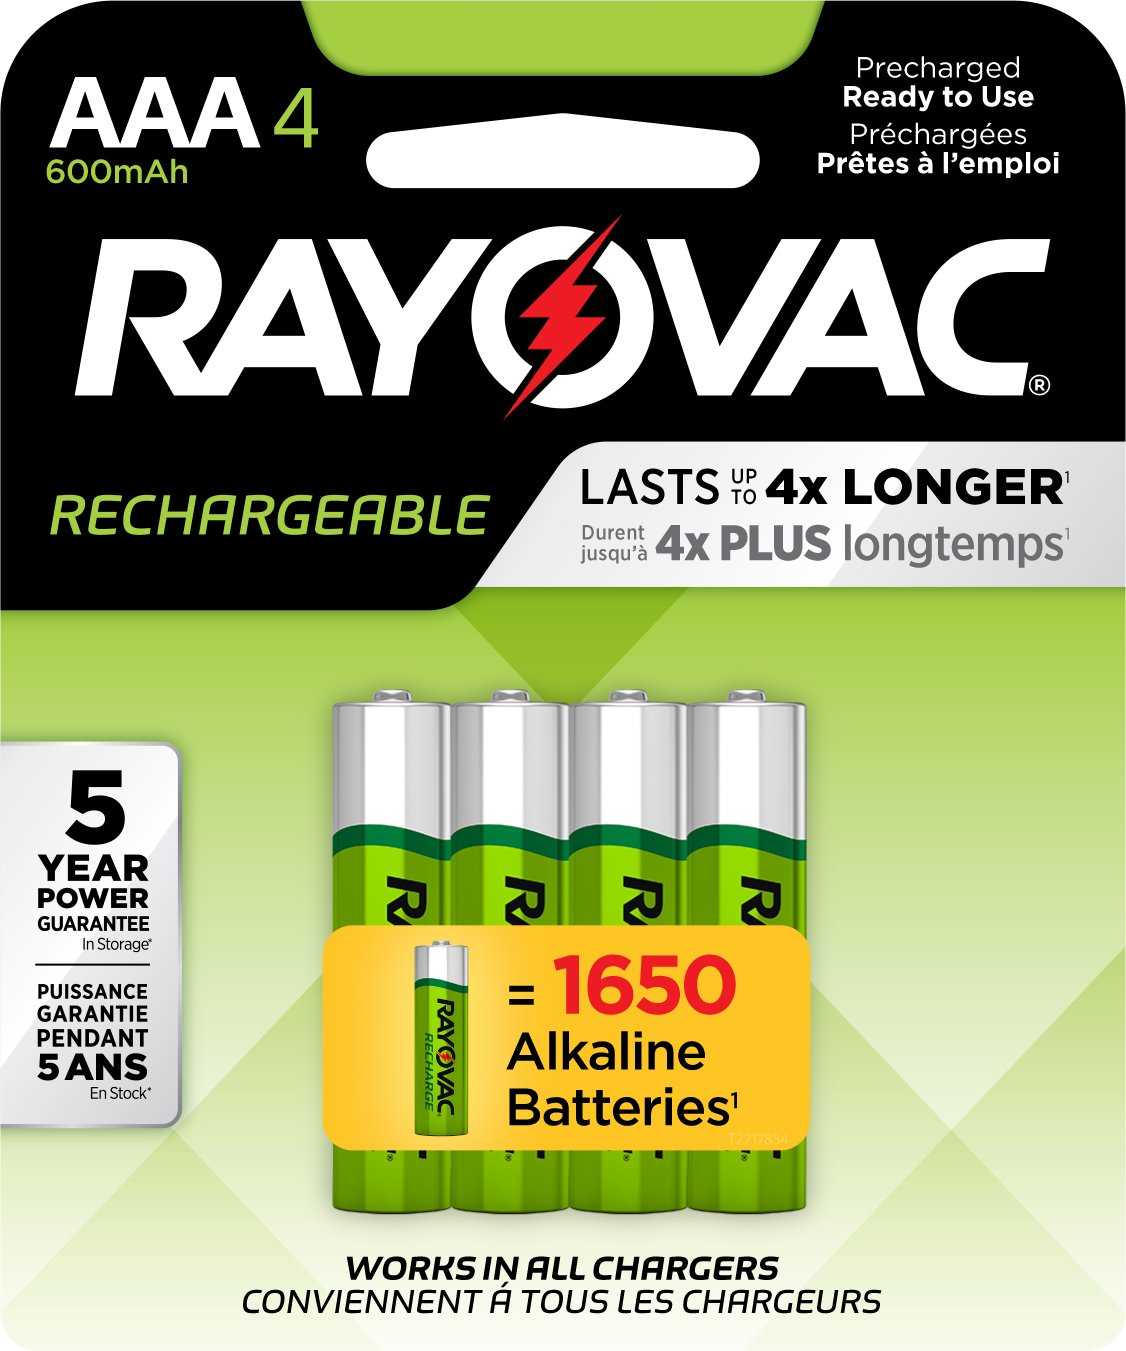 RAYOVAC AAA 4-Pack RECHARGEABLE Batteries, LD724-4OP GENE